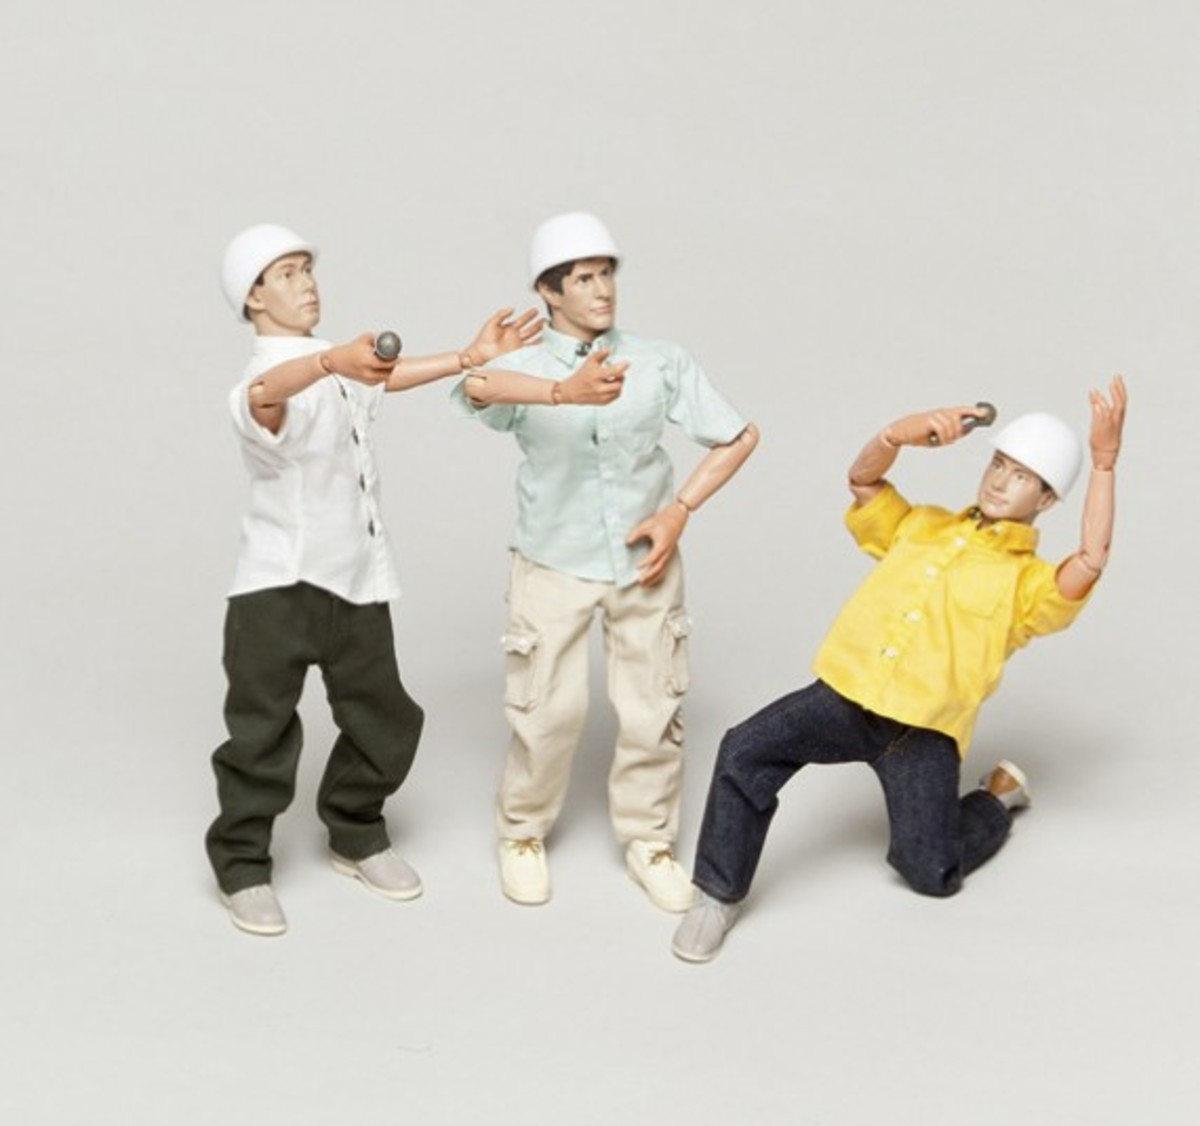 a-bathing-ape-beastie-boys-action-figures-auction-04